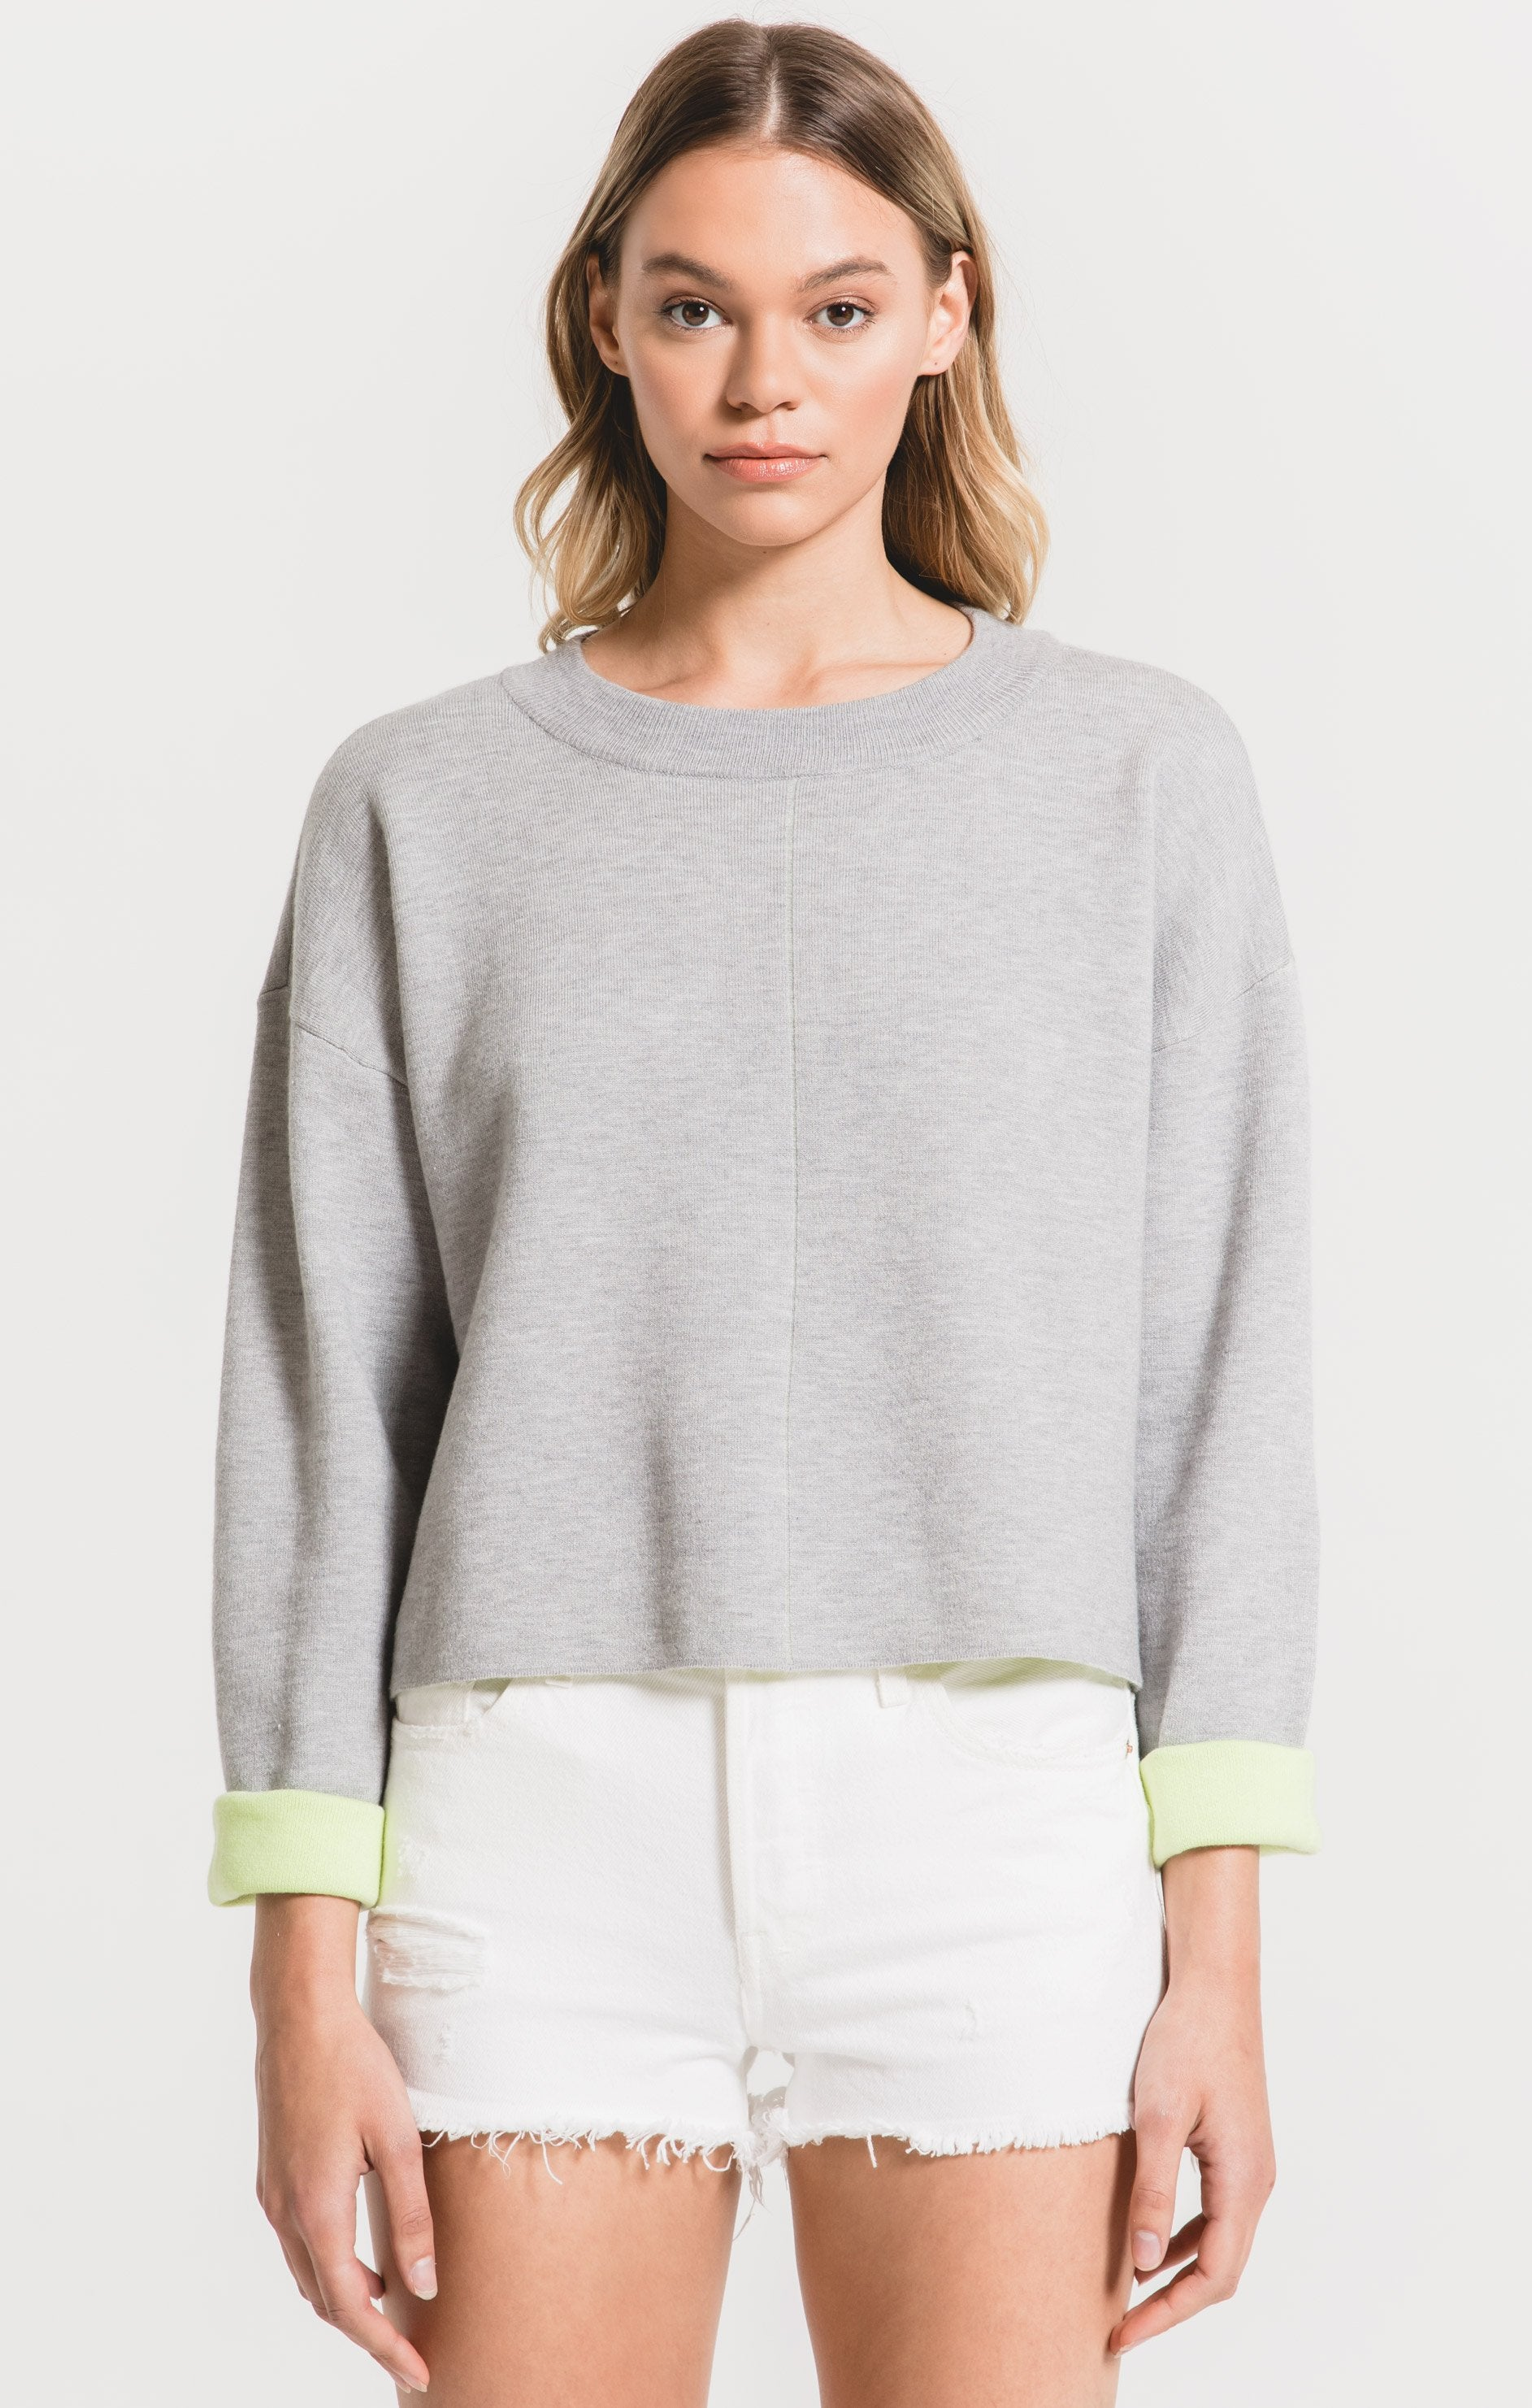 Sweaters Villa Paradiso Reversible Sweater by Rag Poets Heather Grey